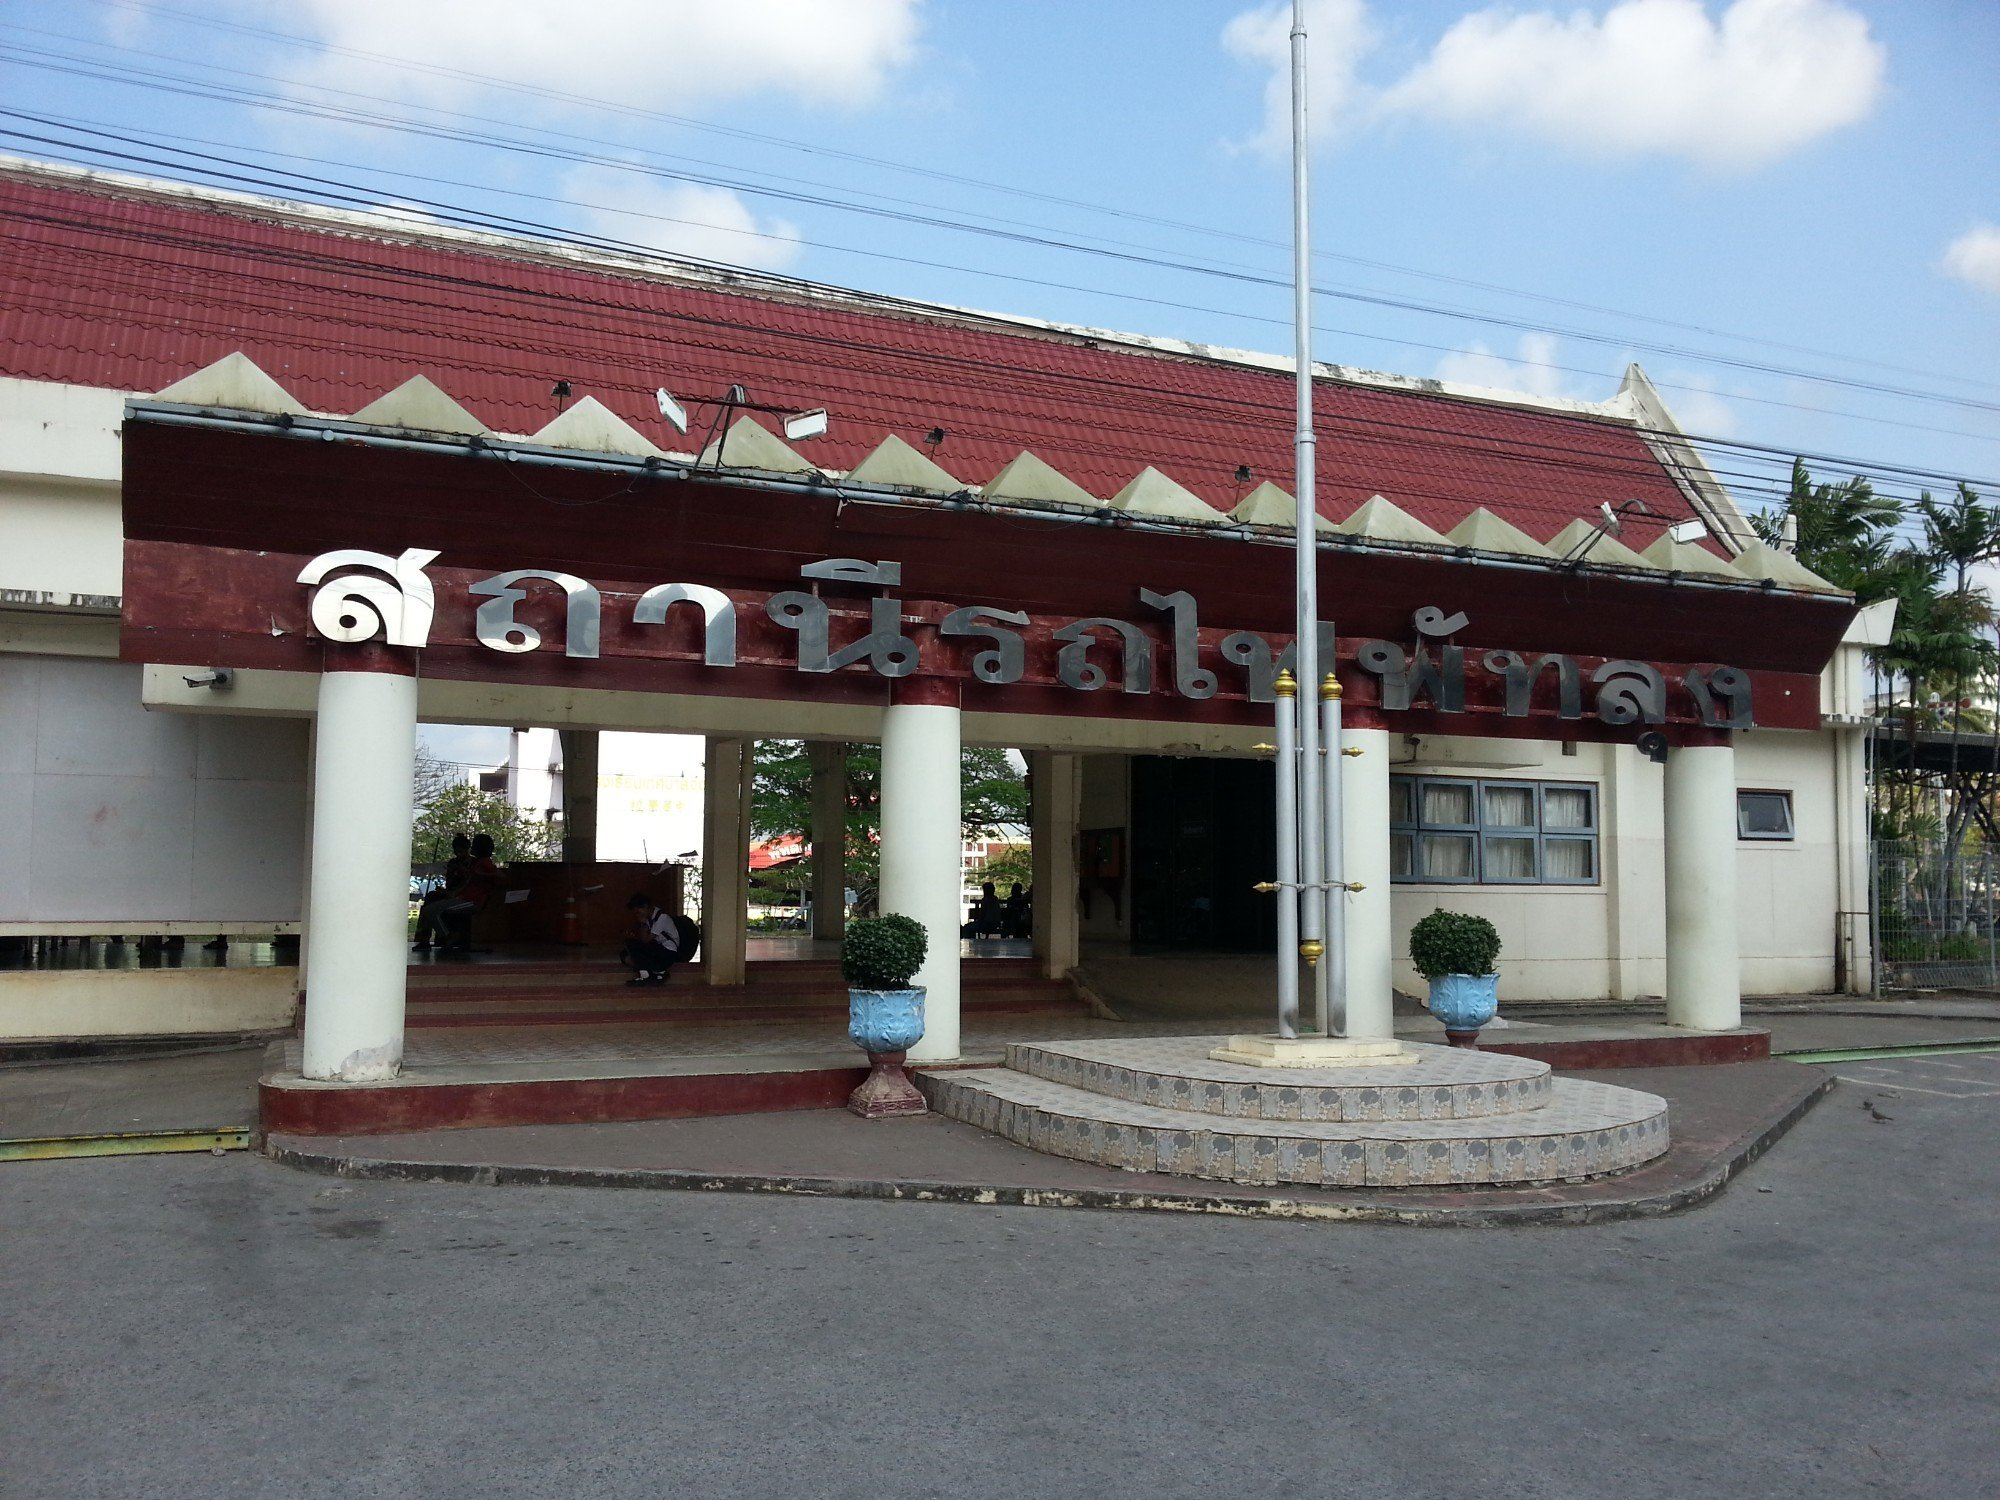 Entrance to Phatthalung Railway Station